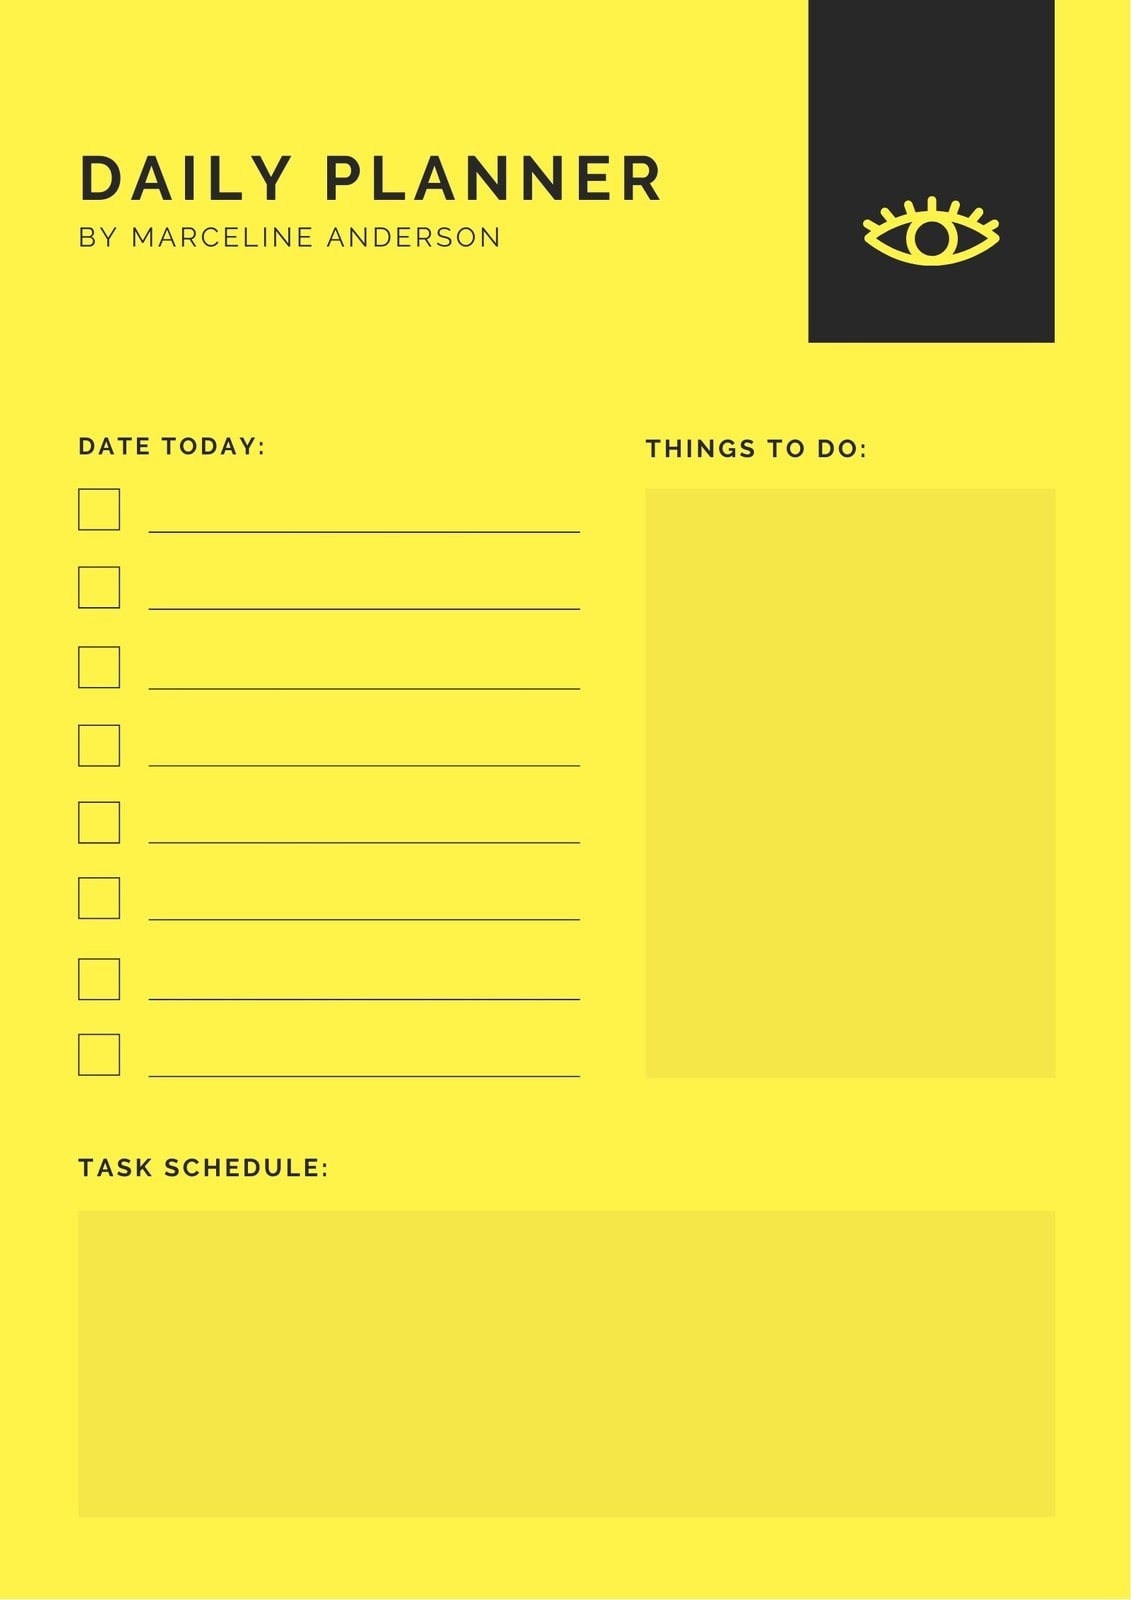 Yellow Minimalist Daily Planner